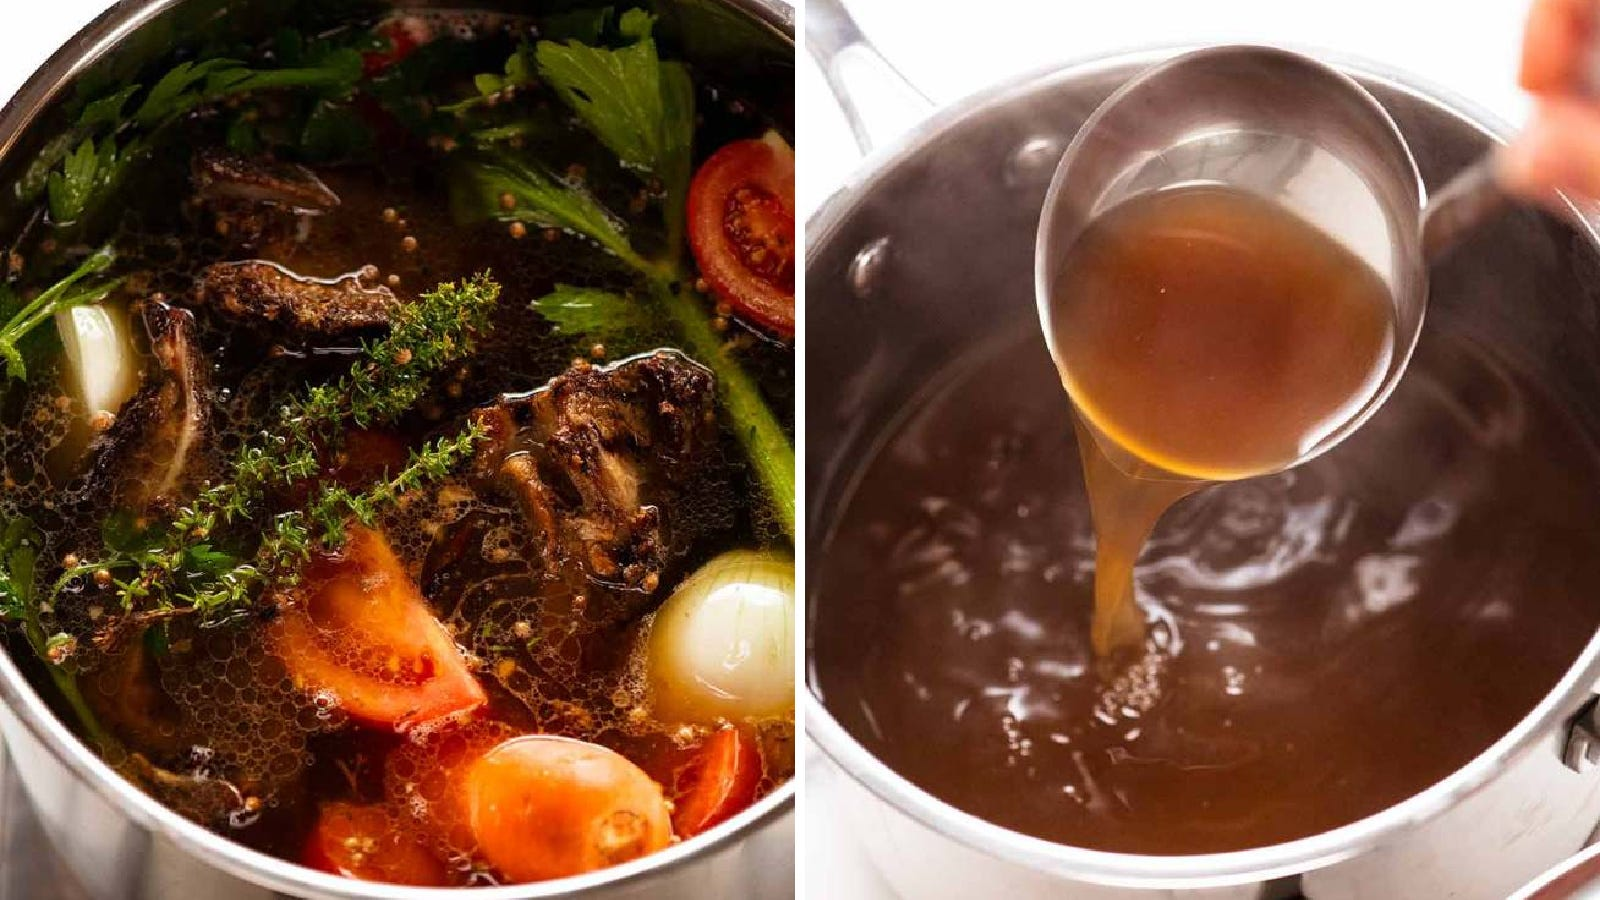 Two images of beef stock made by Recipe Tin Eats.